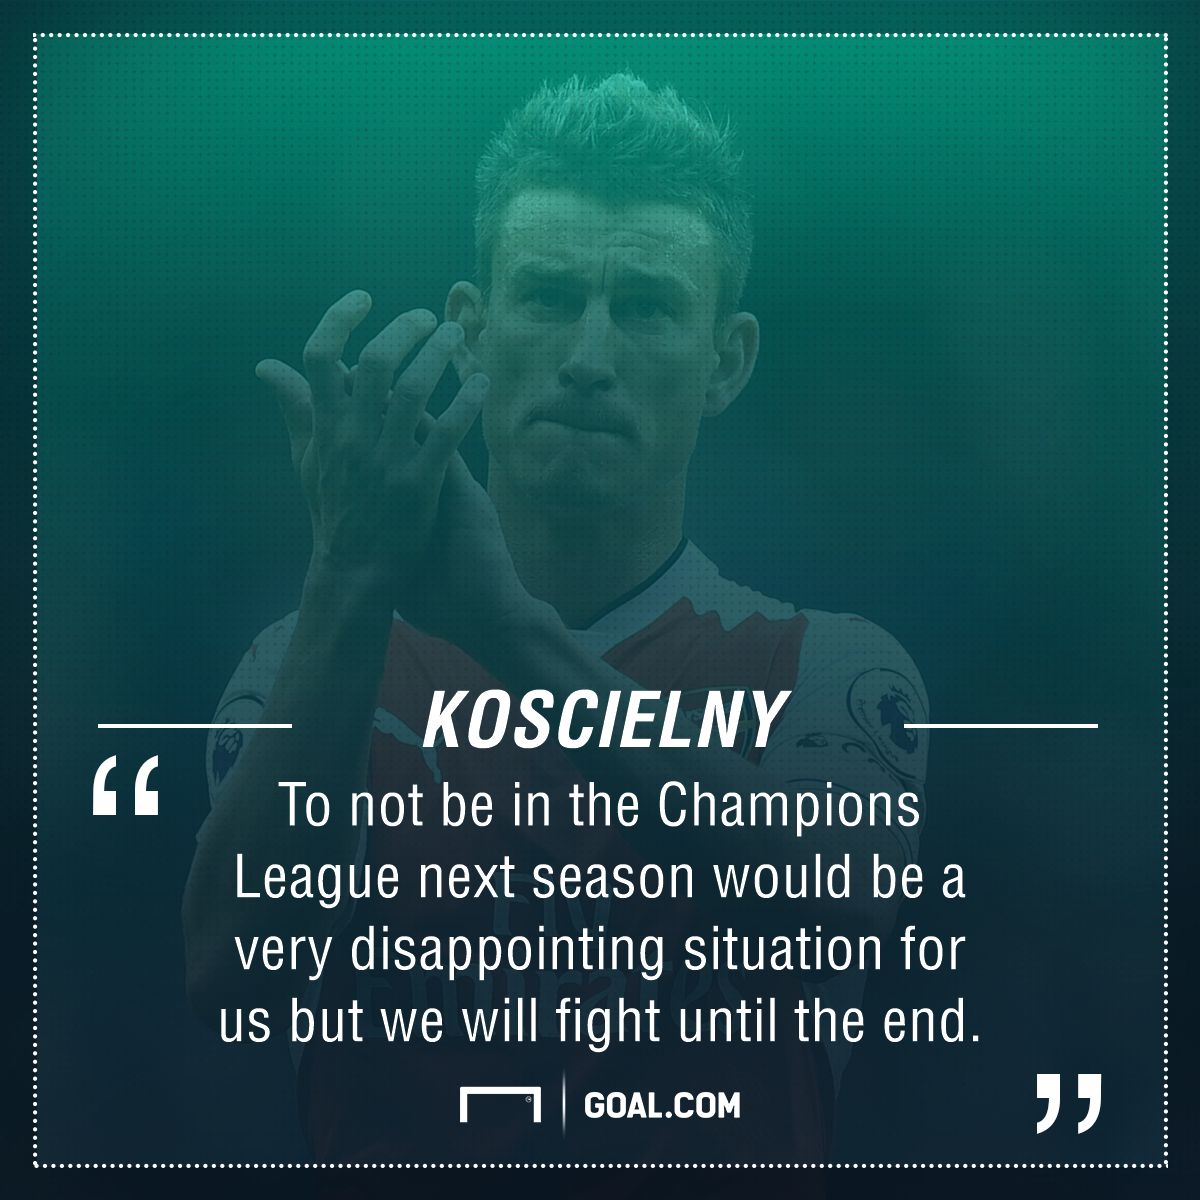 Koscielny will require daily treatment on an Achilles injury